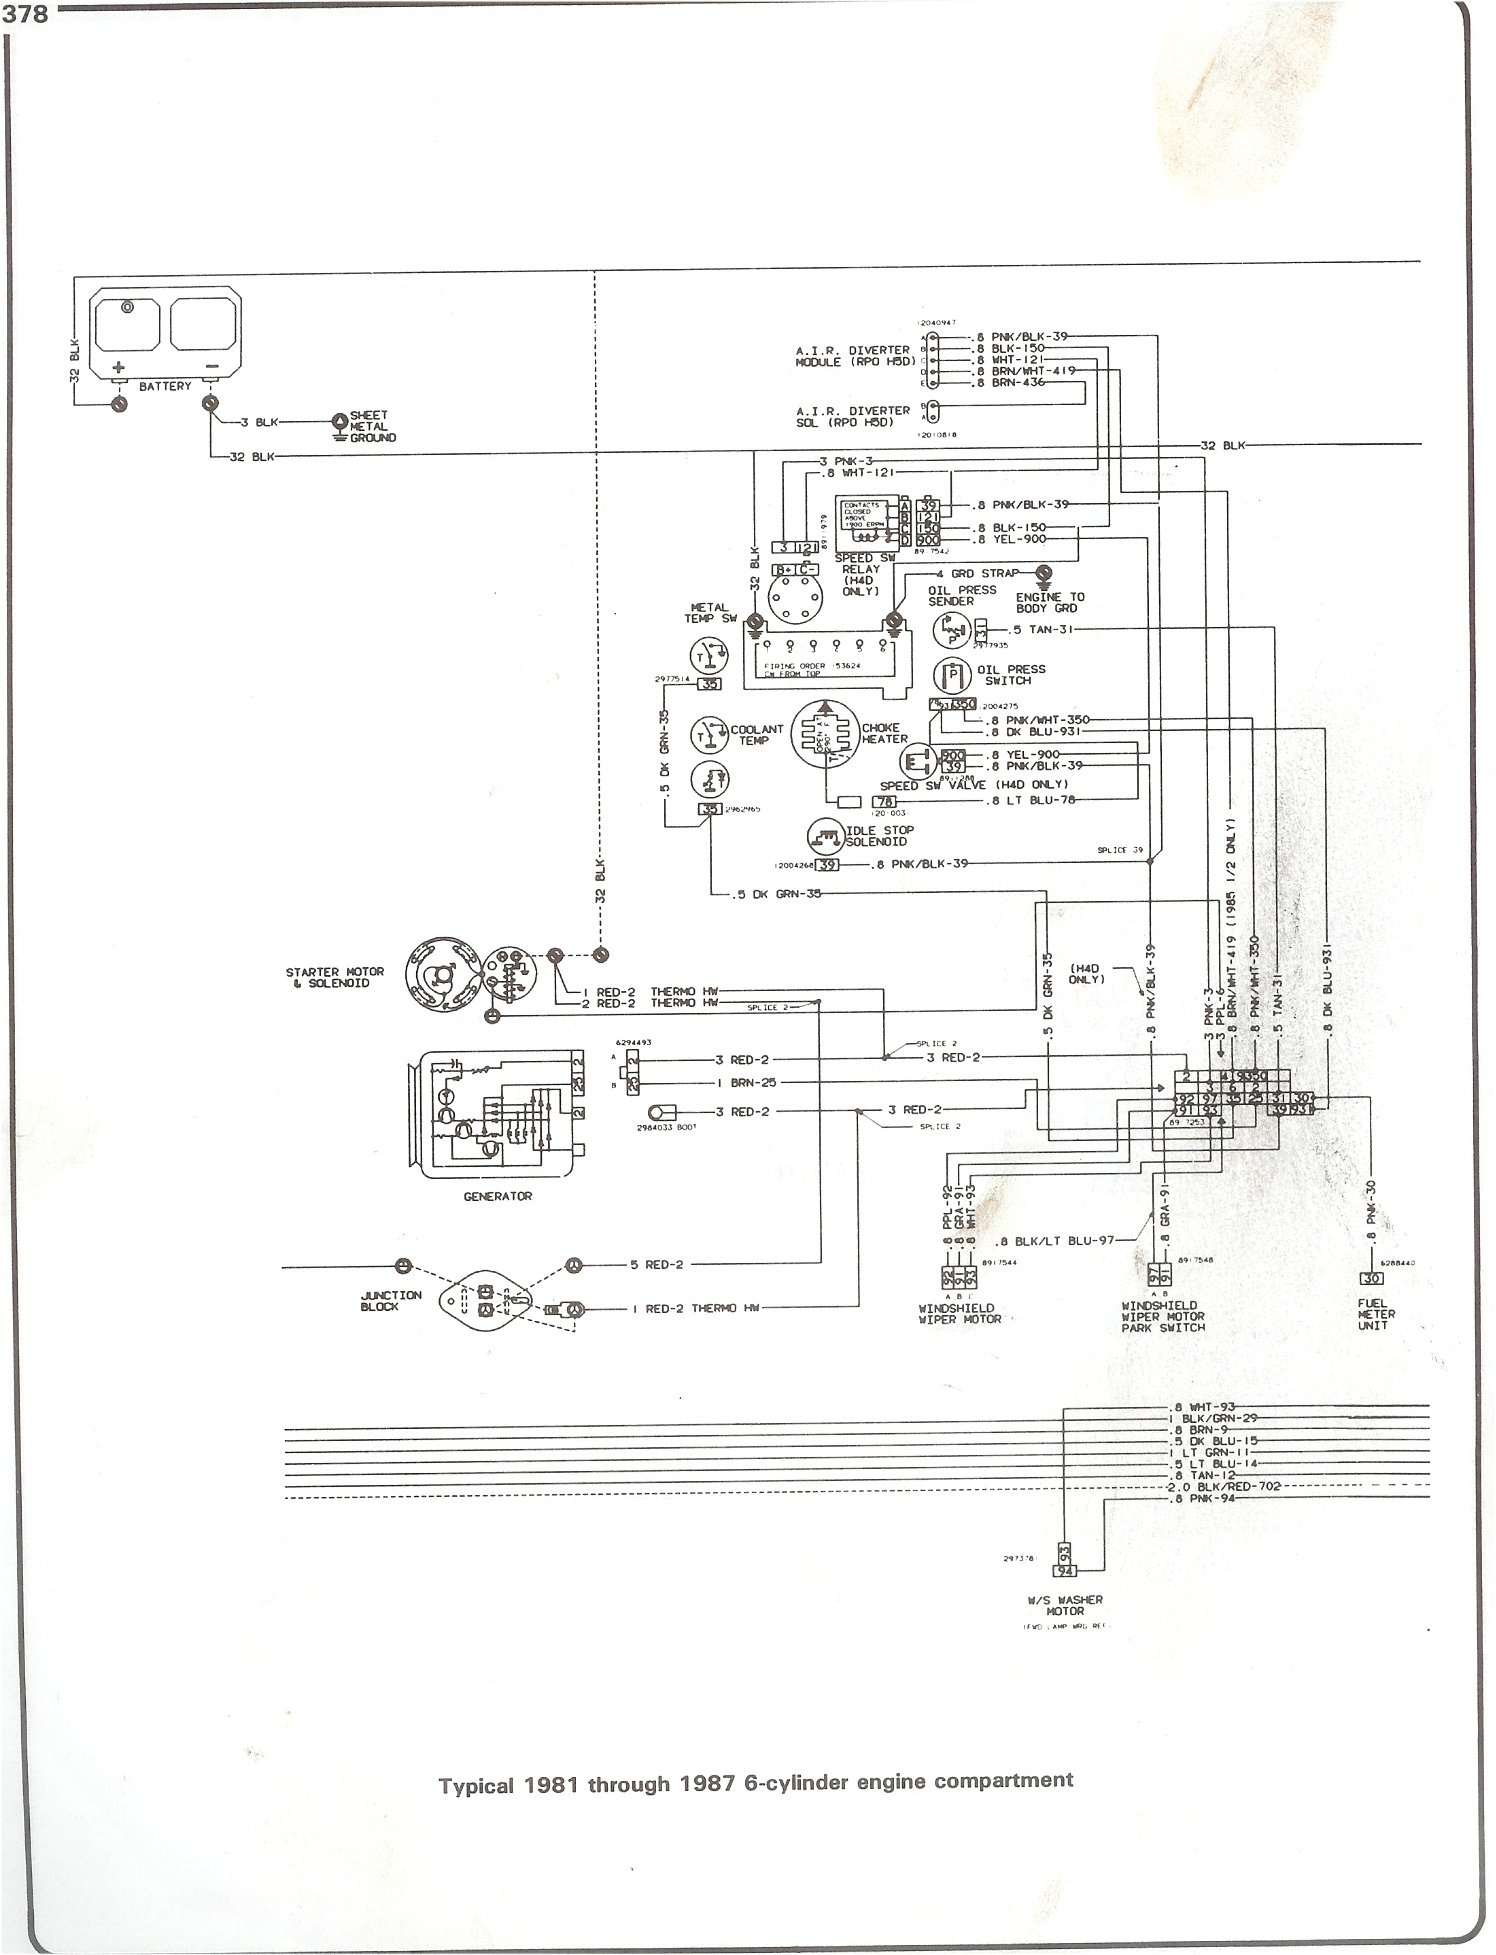 1987 Dodge Wiring Diagram Library 87 Schematic Complete 73 Diagrams Rh Forum 87chevytrucks Com 1986 Gmc Cooling System